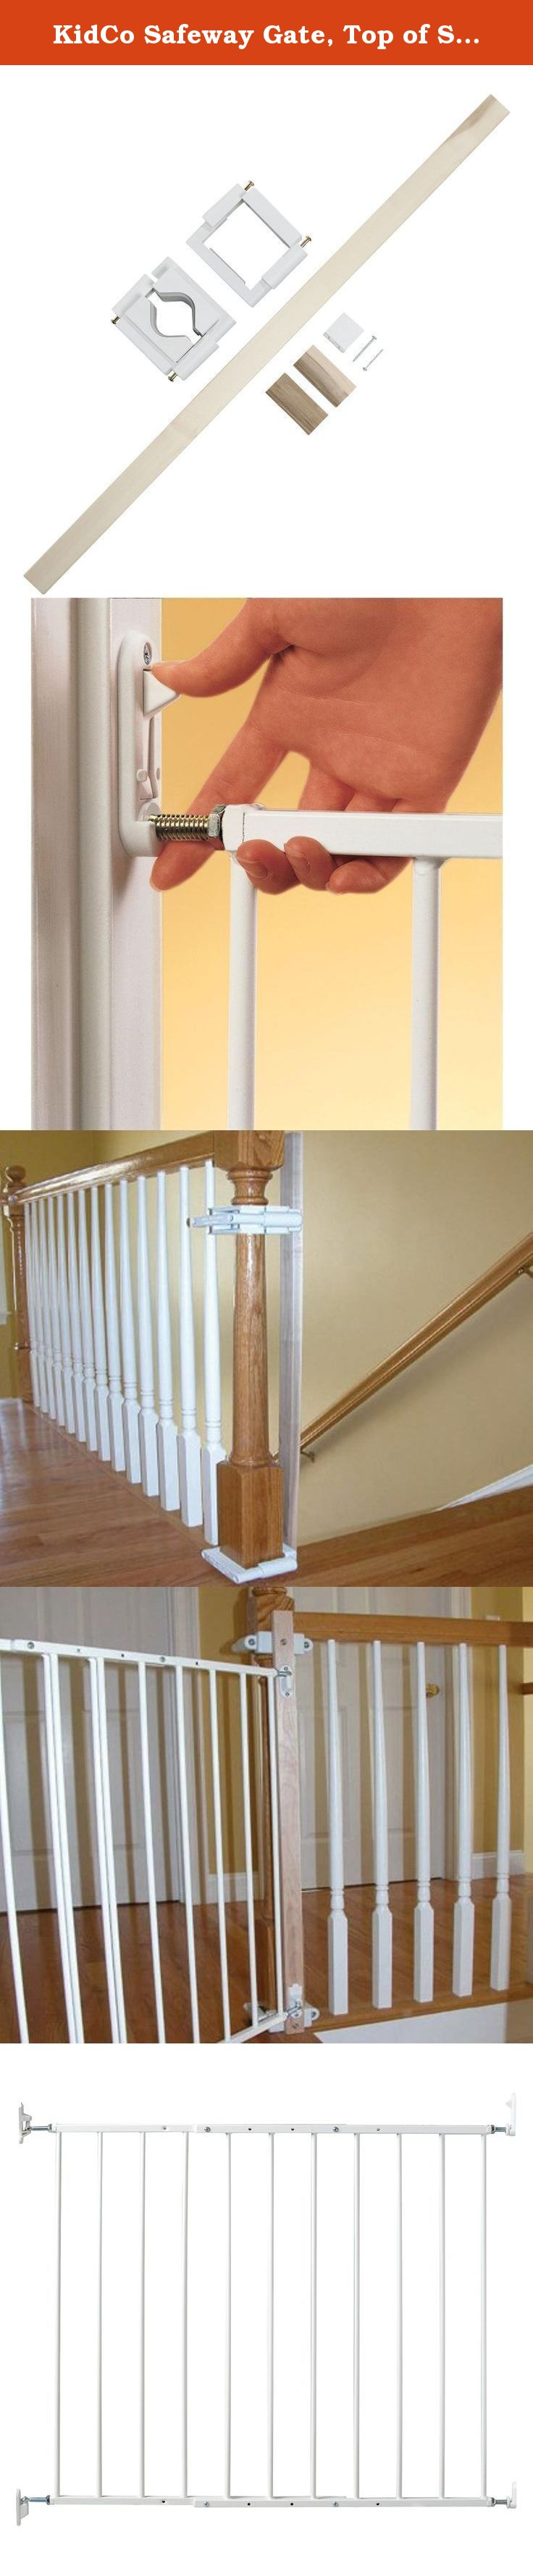 KidCo Safeway Gate, Top Of Stairs Gate, White With Stairway Installation  Kit. Easy